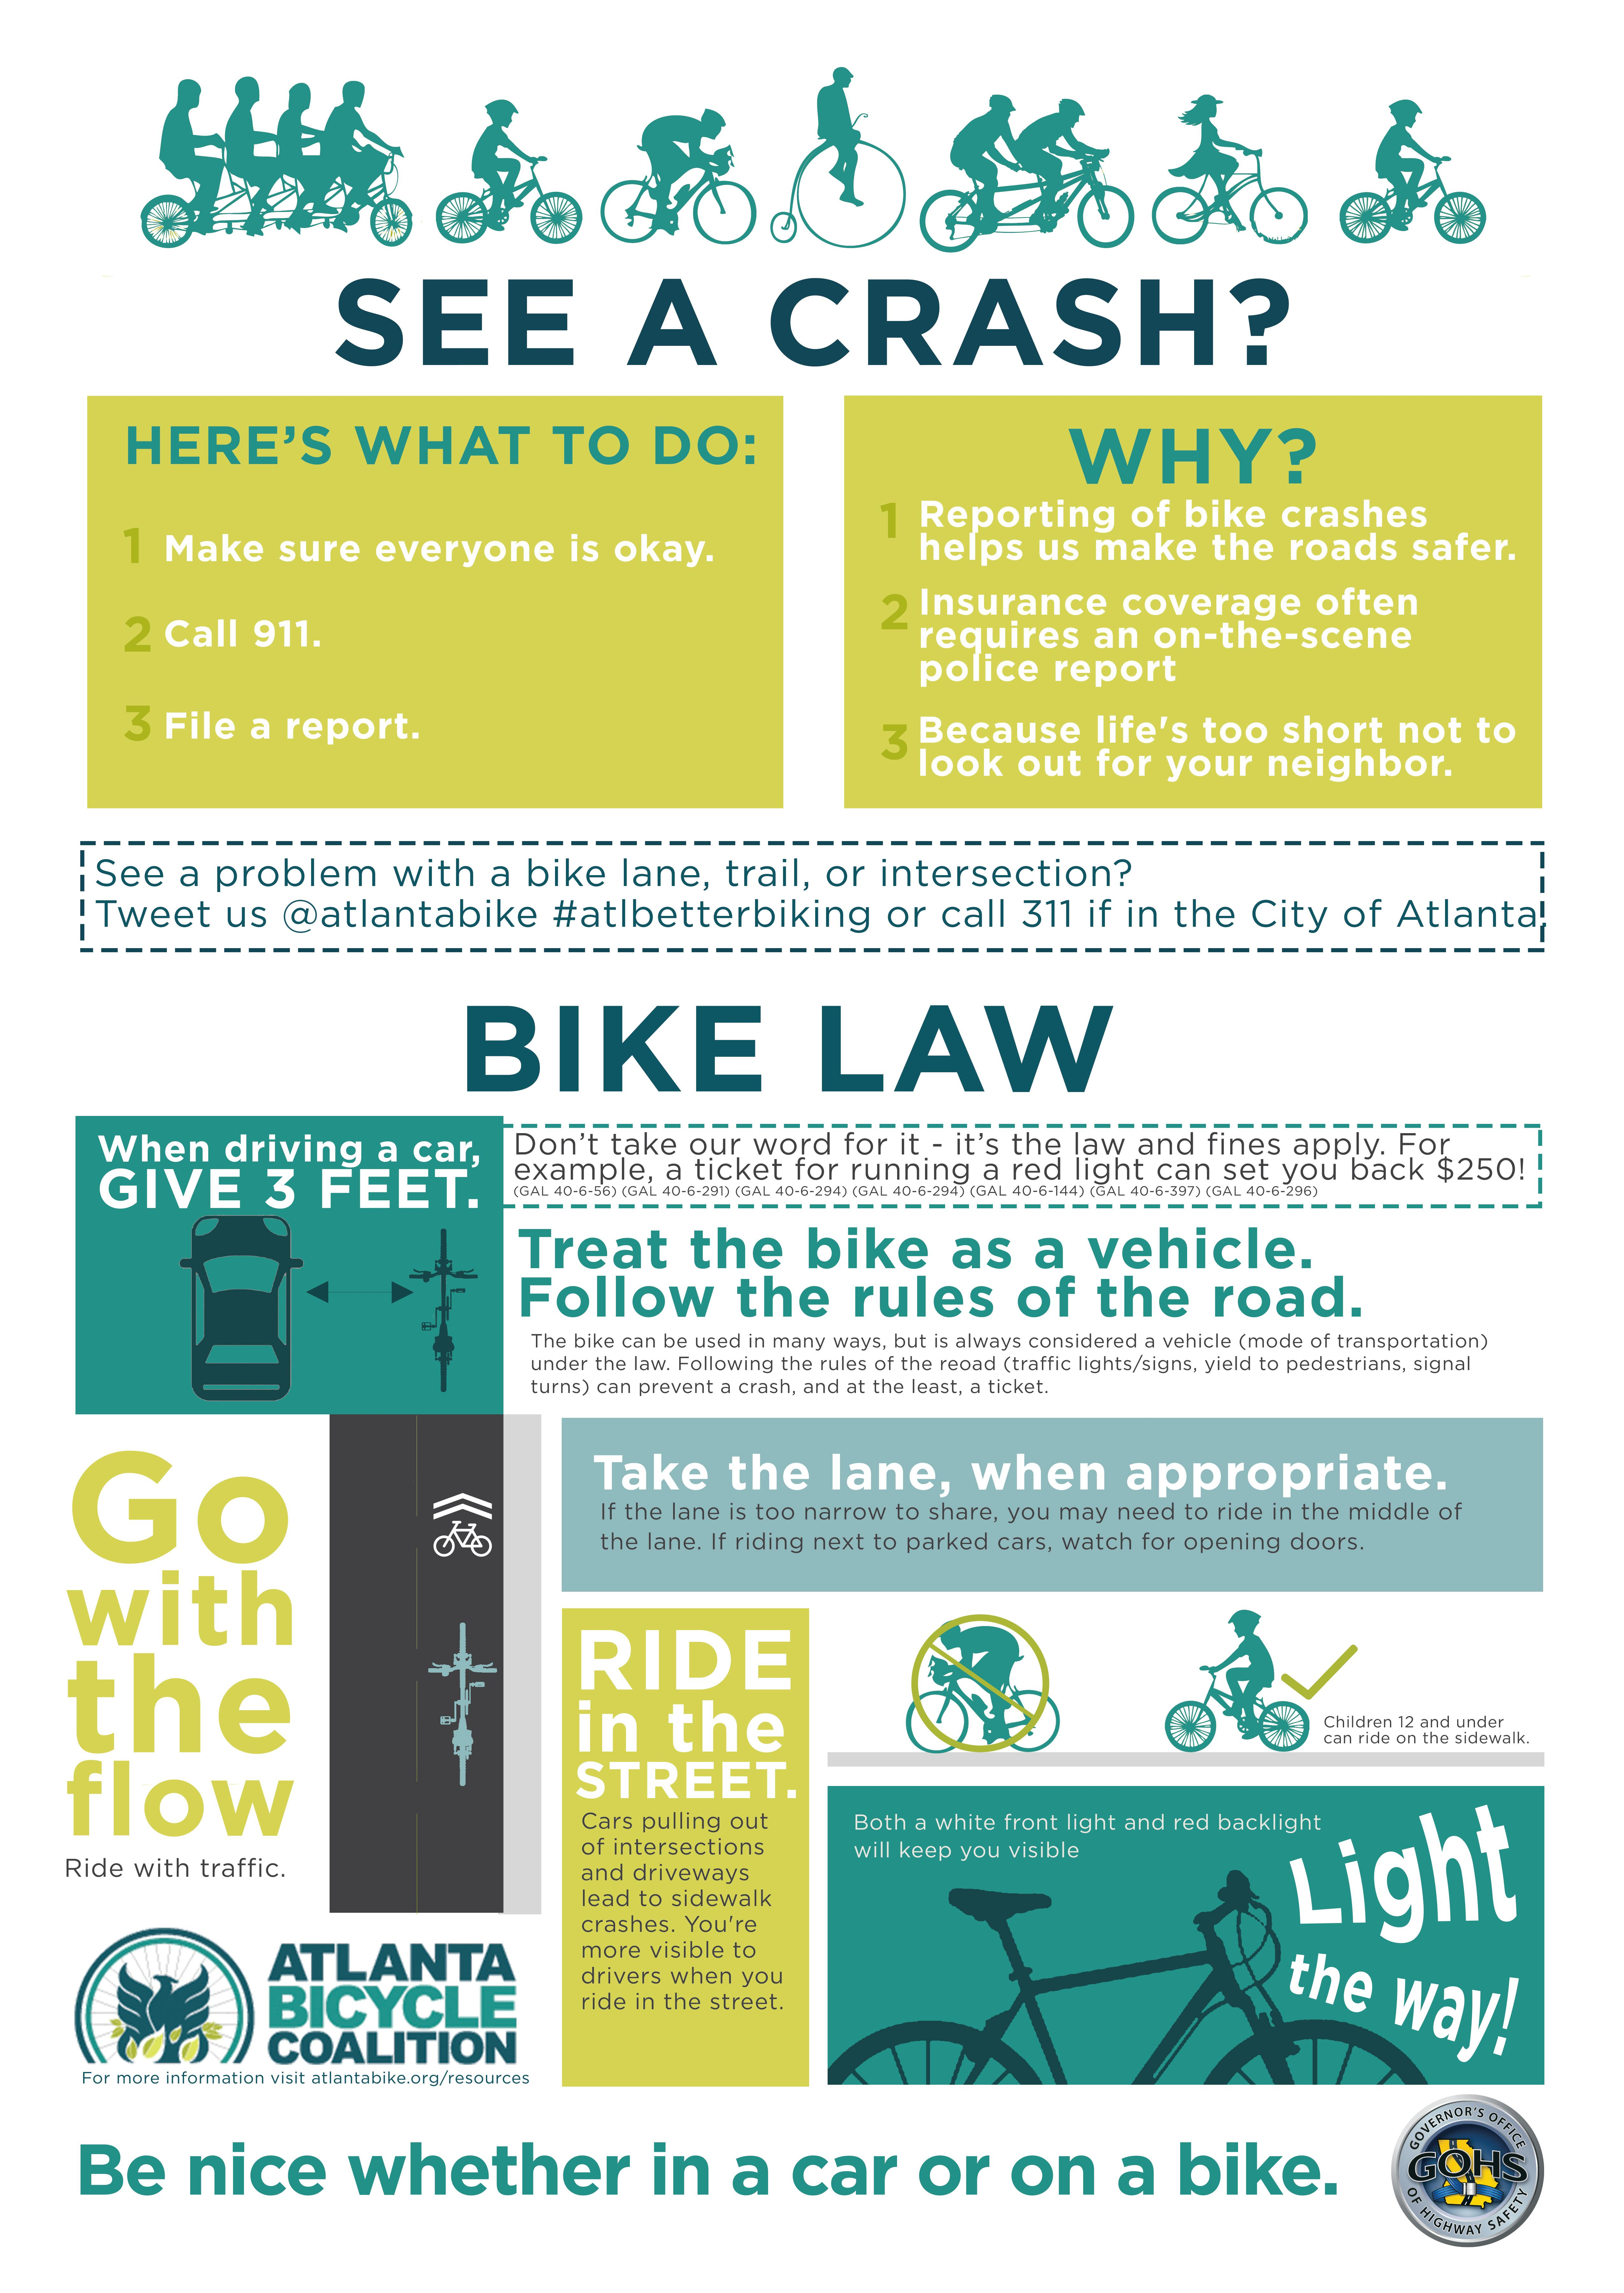 Crash_Reporting_and_Bike_Law-ABC-page-001_(1).jpg